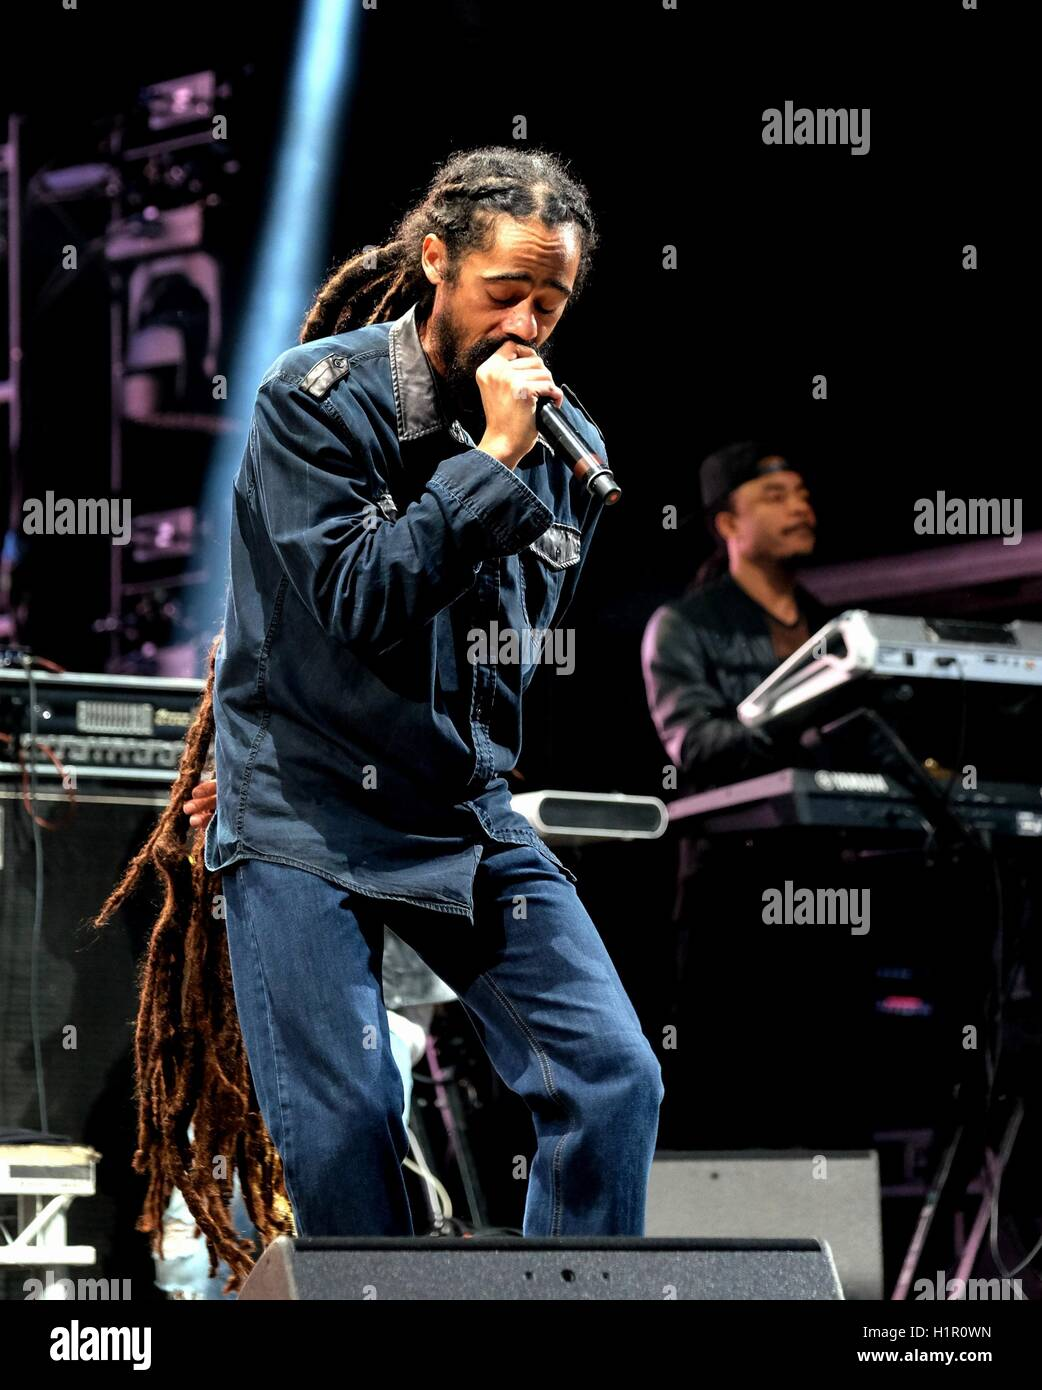 Bestival, Newport, Isle of Wight 9th September 2016, Jamaican reggae artist Damian Marley performing live on stage - Stock Image